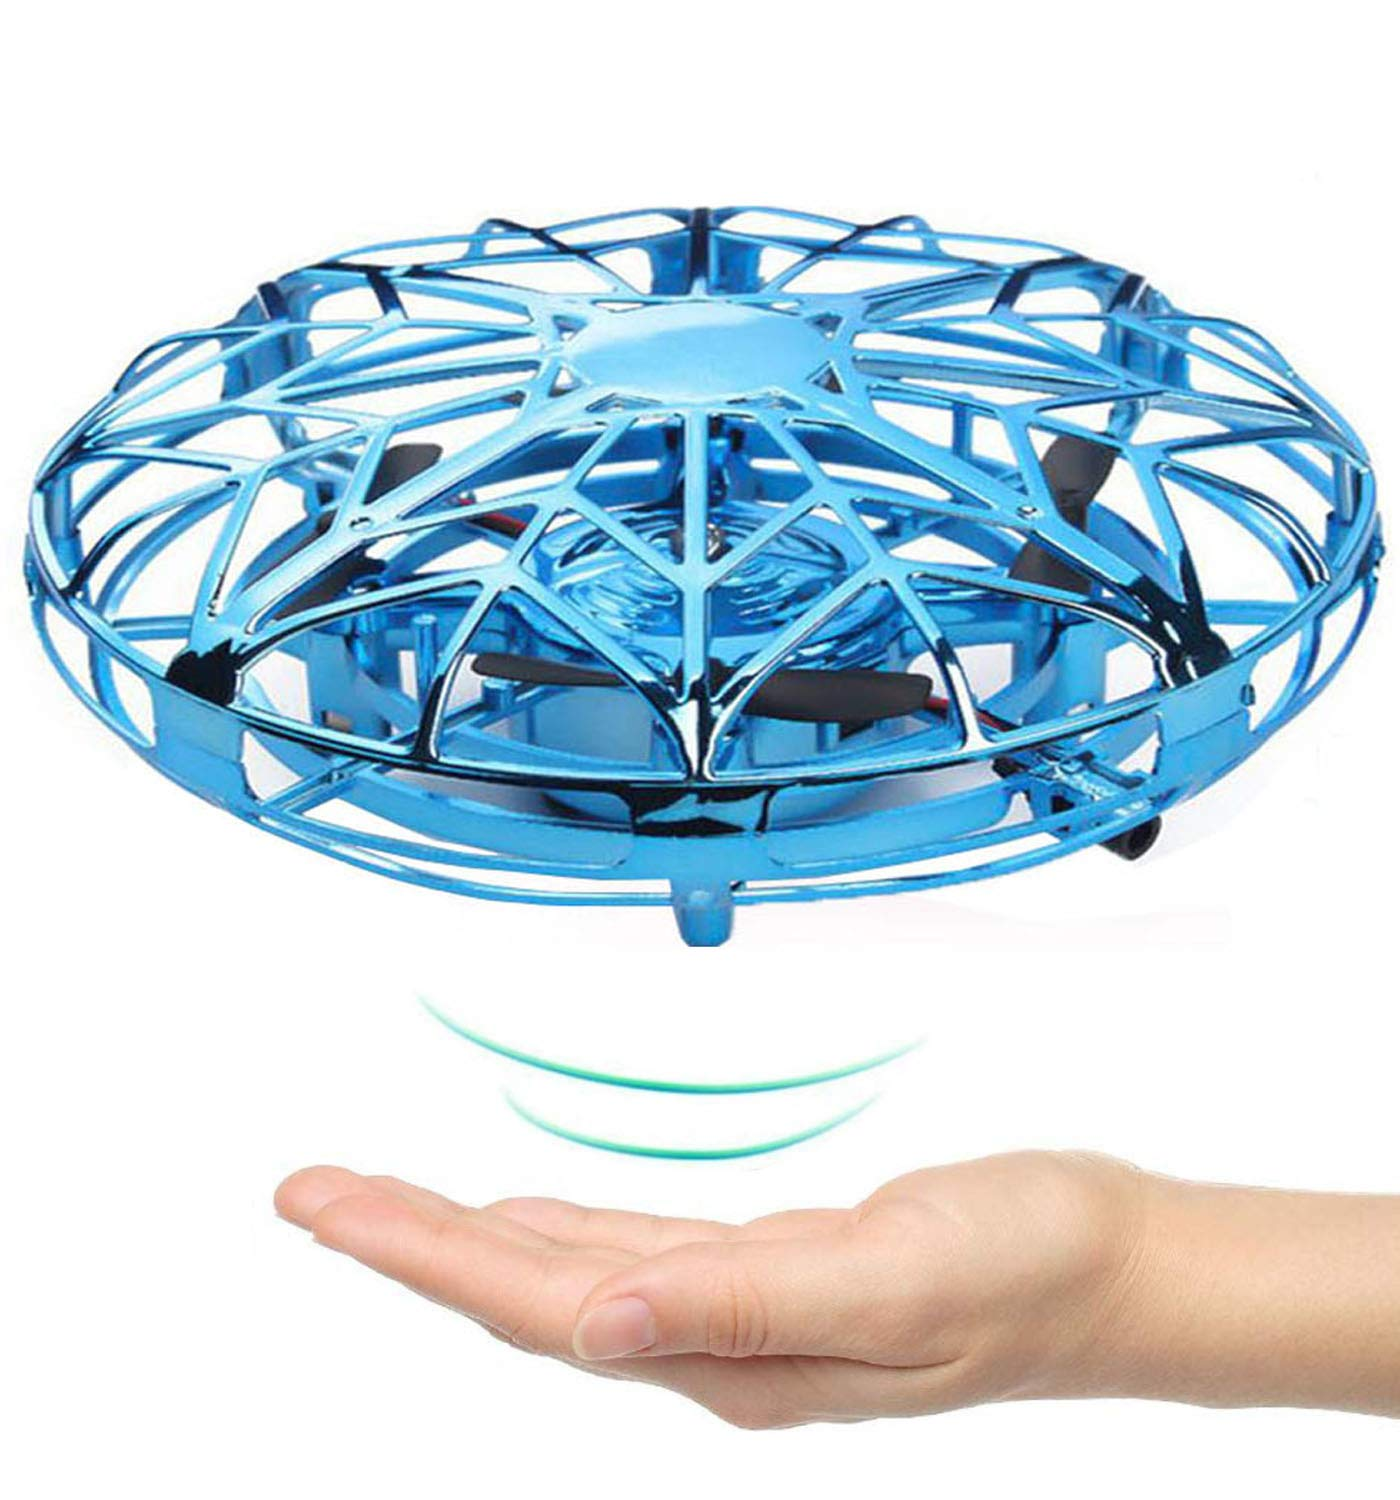 Children's flying toy, DAXHU remote control Quadcopterv interactive infrared sensor remote control helicopter toy, 360° rotating and flashing LED lights, suitable for boys and girls children's gifts